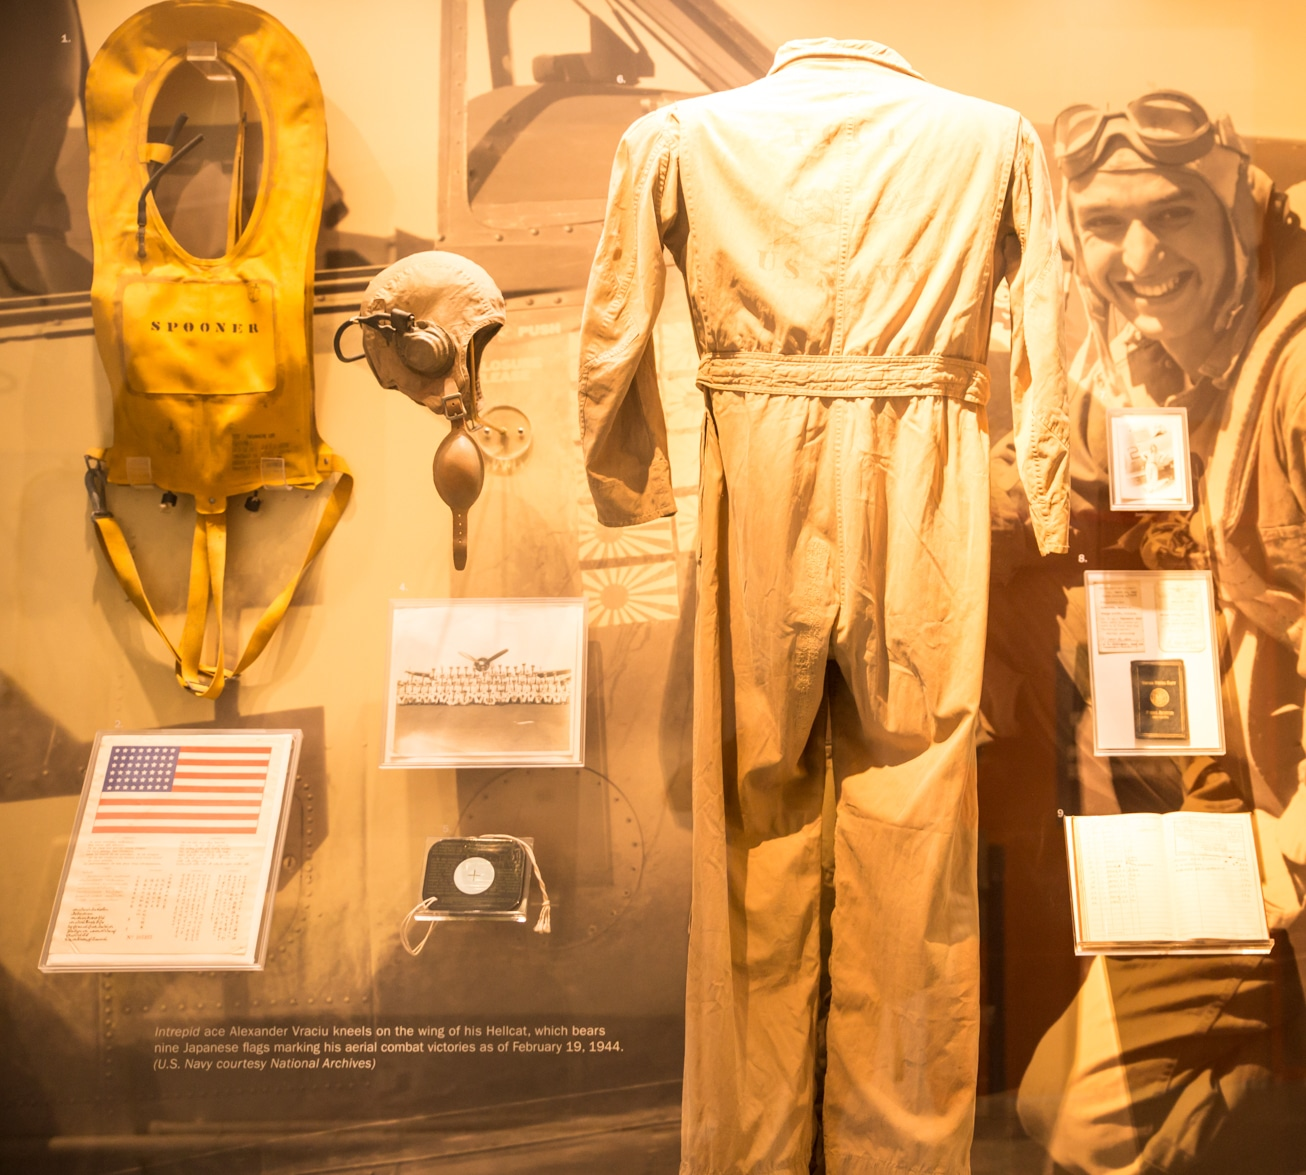 intrepid-sea-air-museum-new-york-tenue-officier-blog-voyage Un voyage interactif dans l'histoire du musée flottant Intrepid Sea Air Space (New York City Pass)